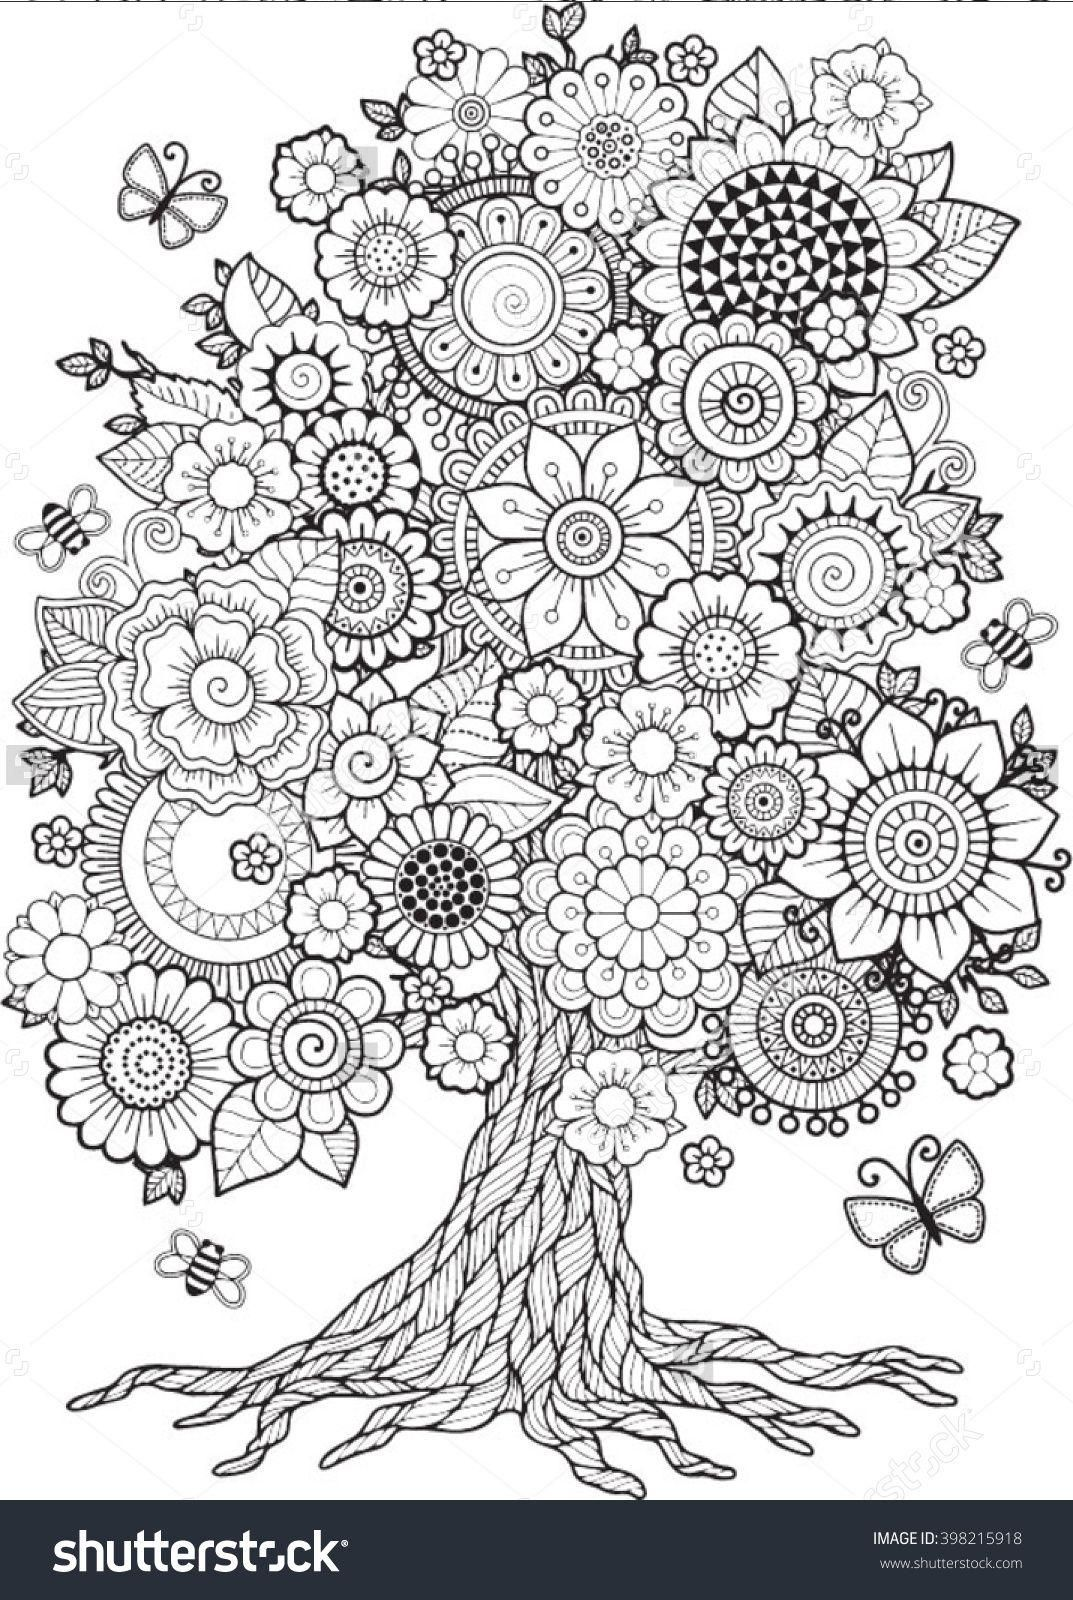 - Blossom Tree. Vector Elements. Coloring Book For Adult. Doodles